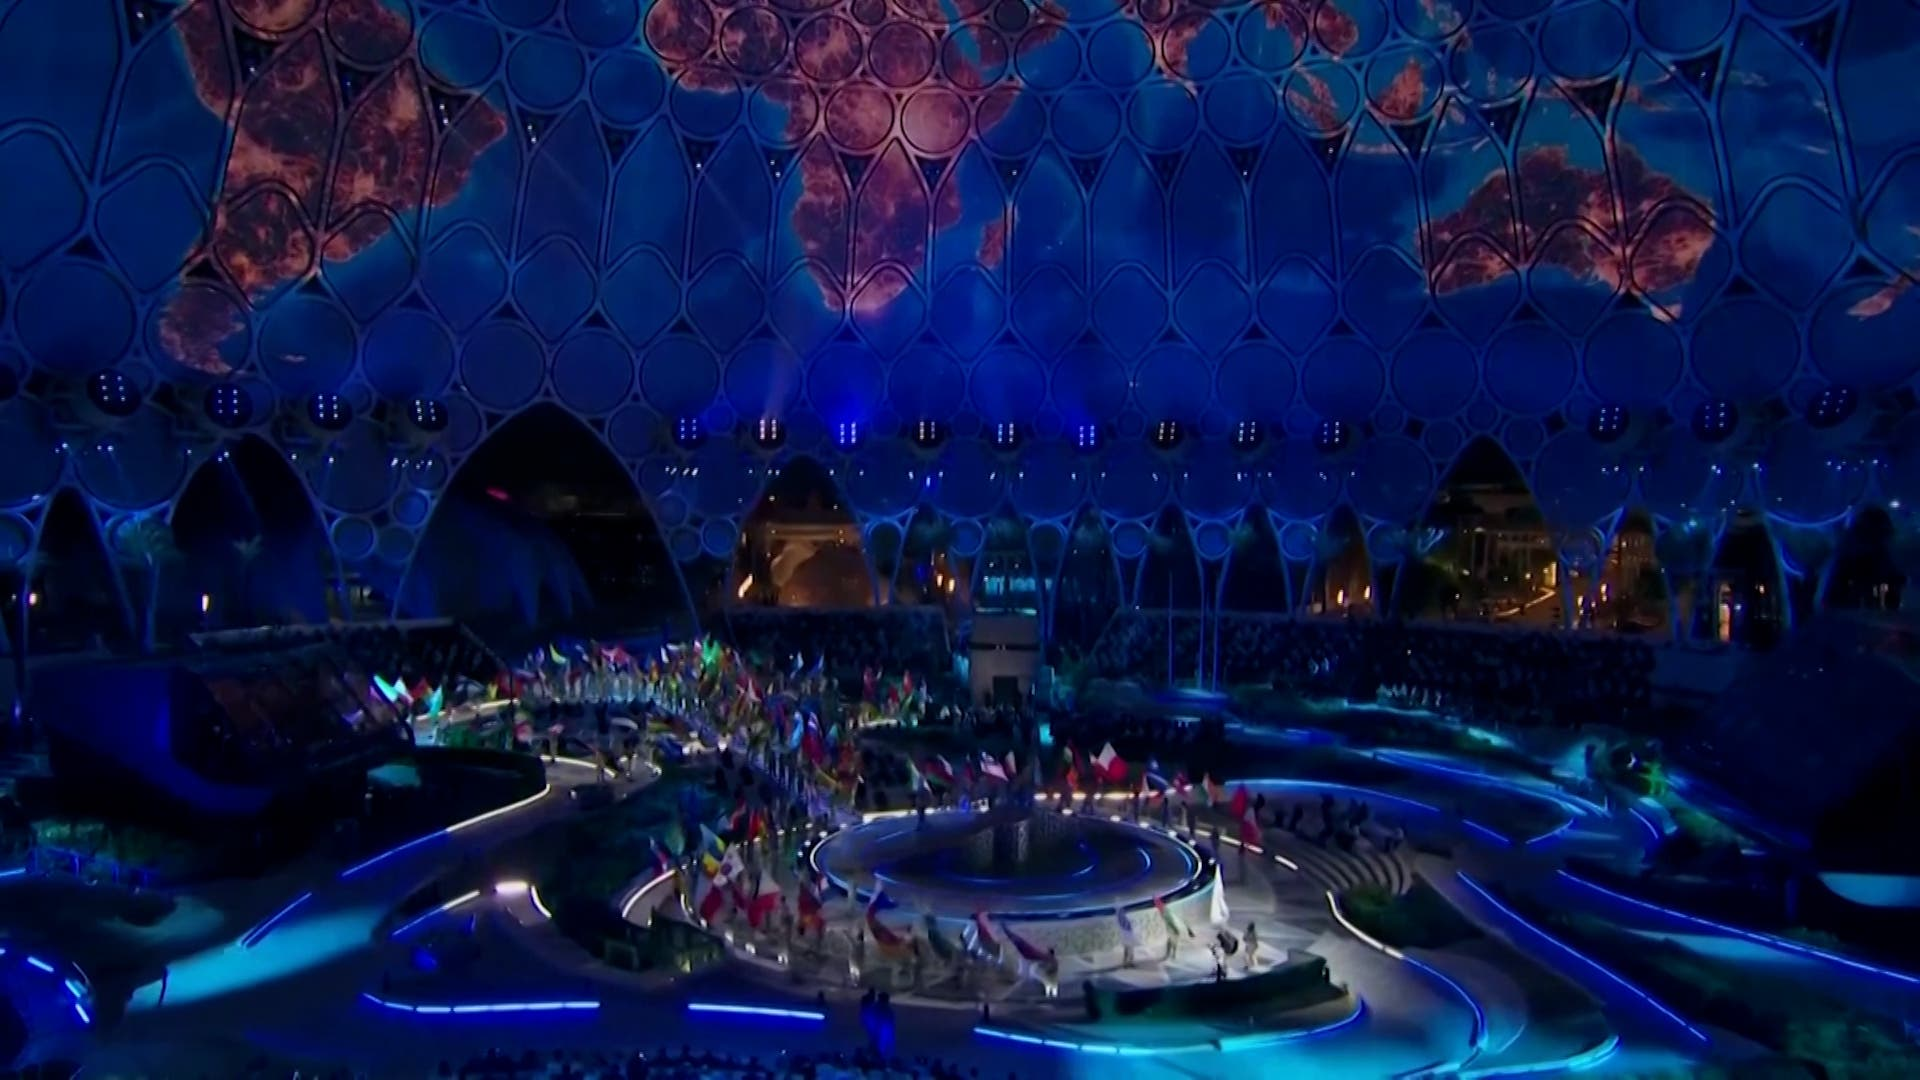 On the eve of Expo 2020 launch, UAE kicks off with a lavish ceremony